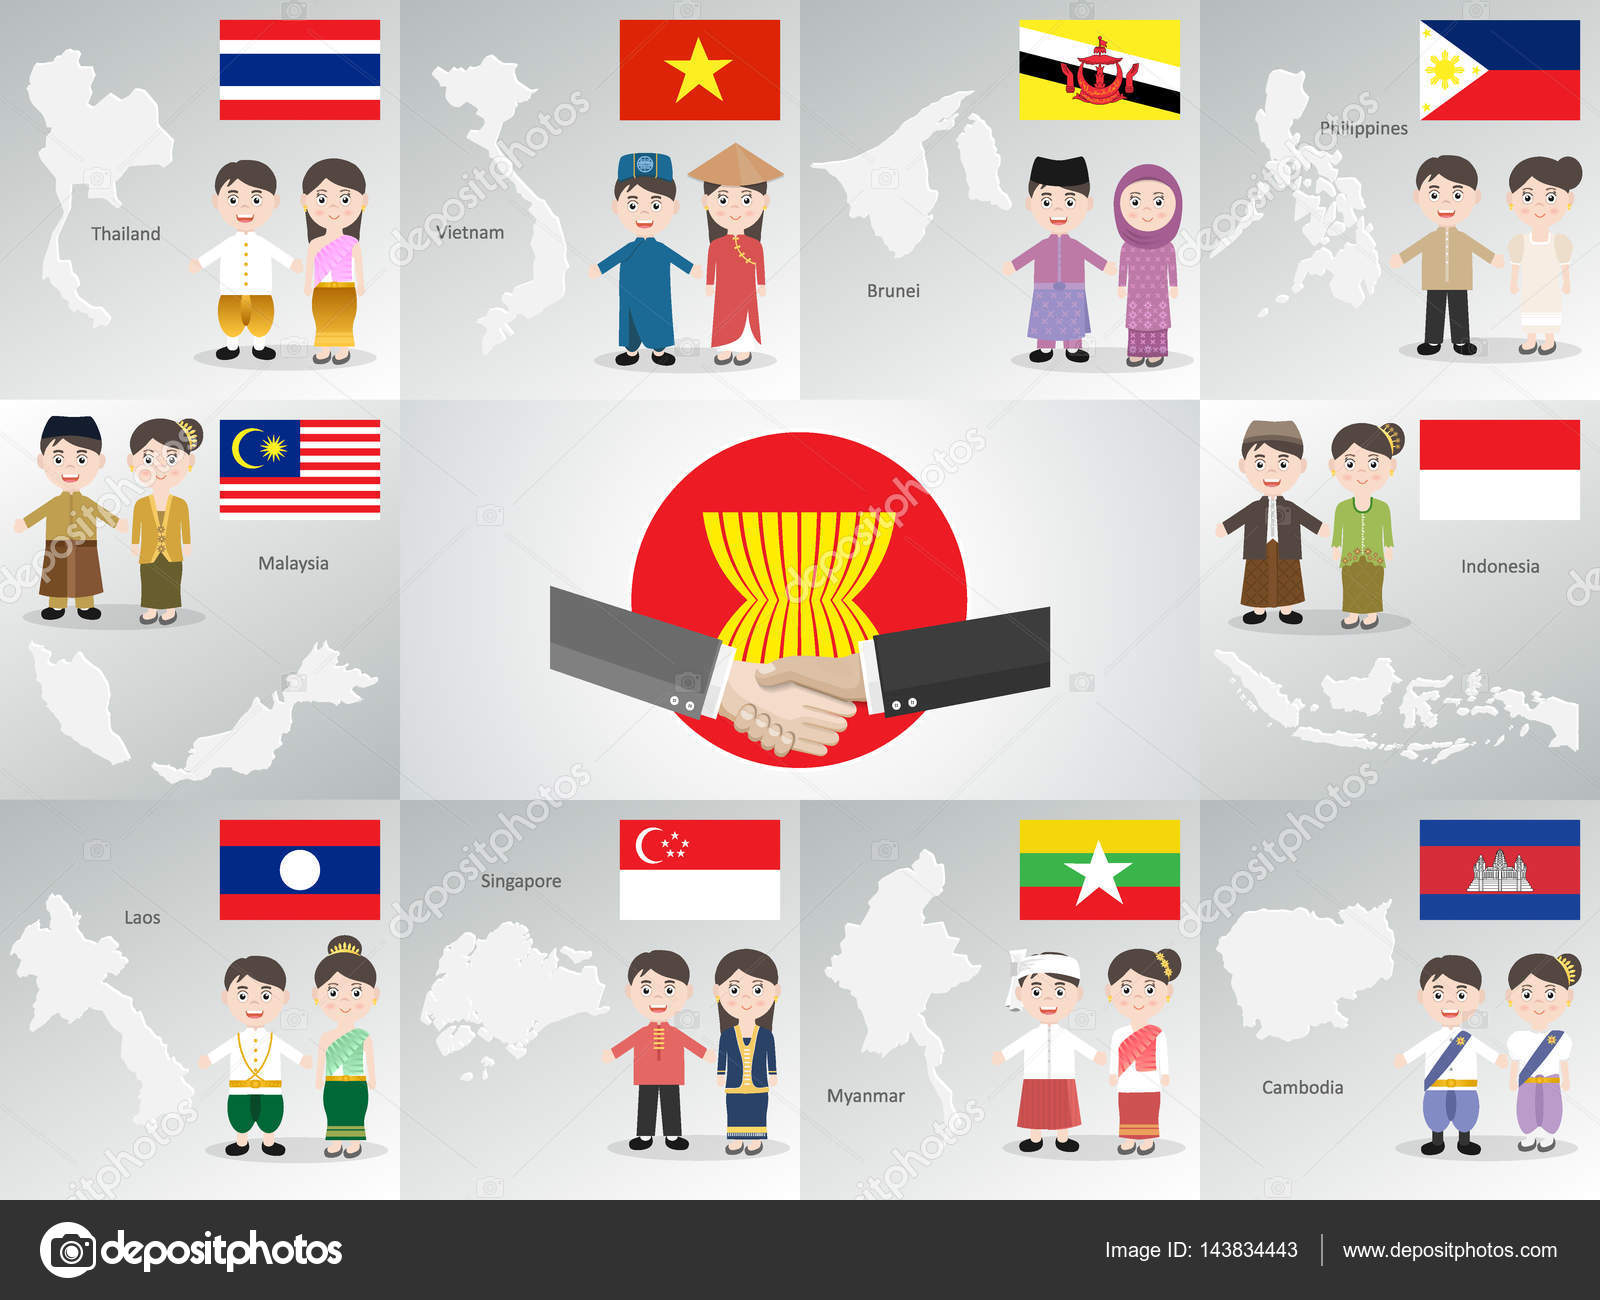 aec asian economic community The asean economic community (aec) aims to implement economic integration initiatives to create a single market across asean member states on 20.